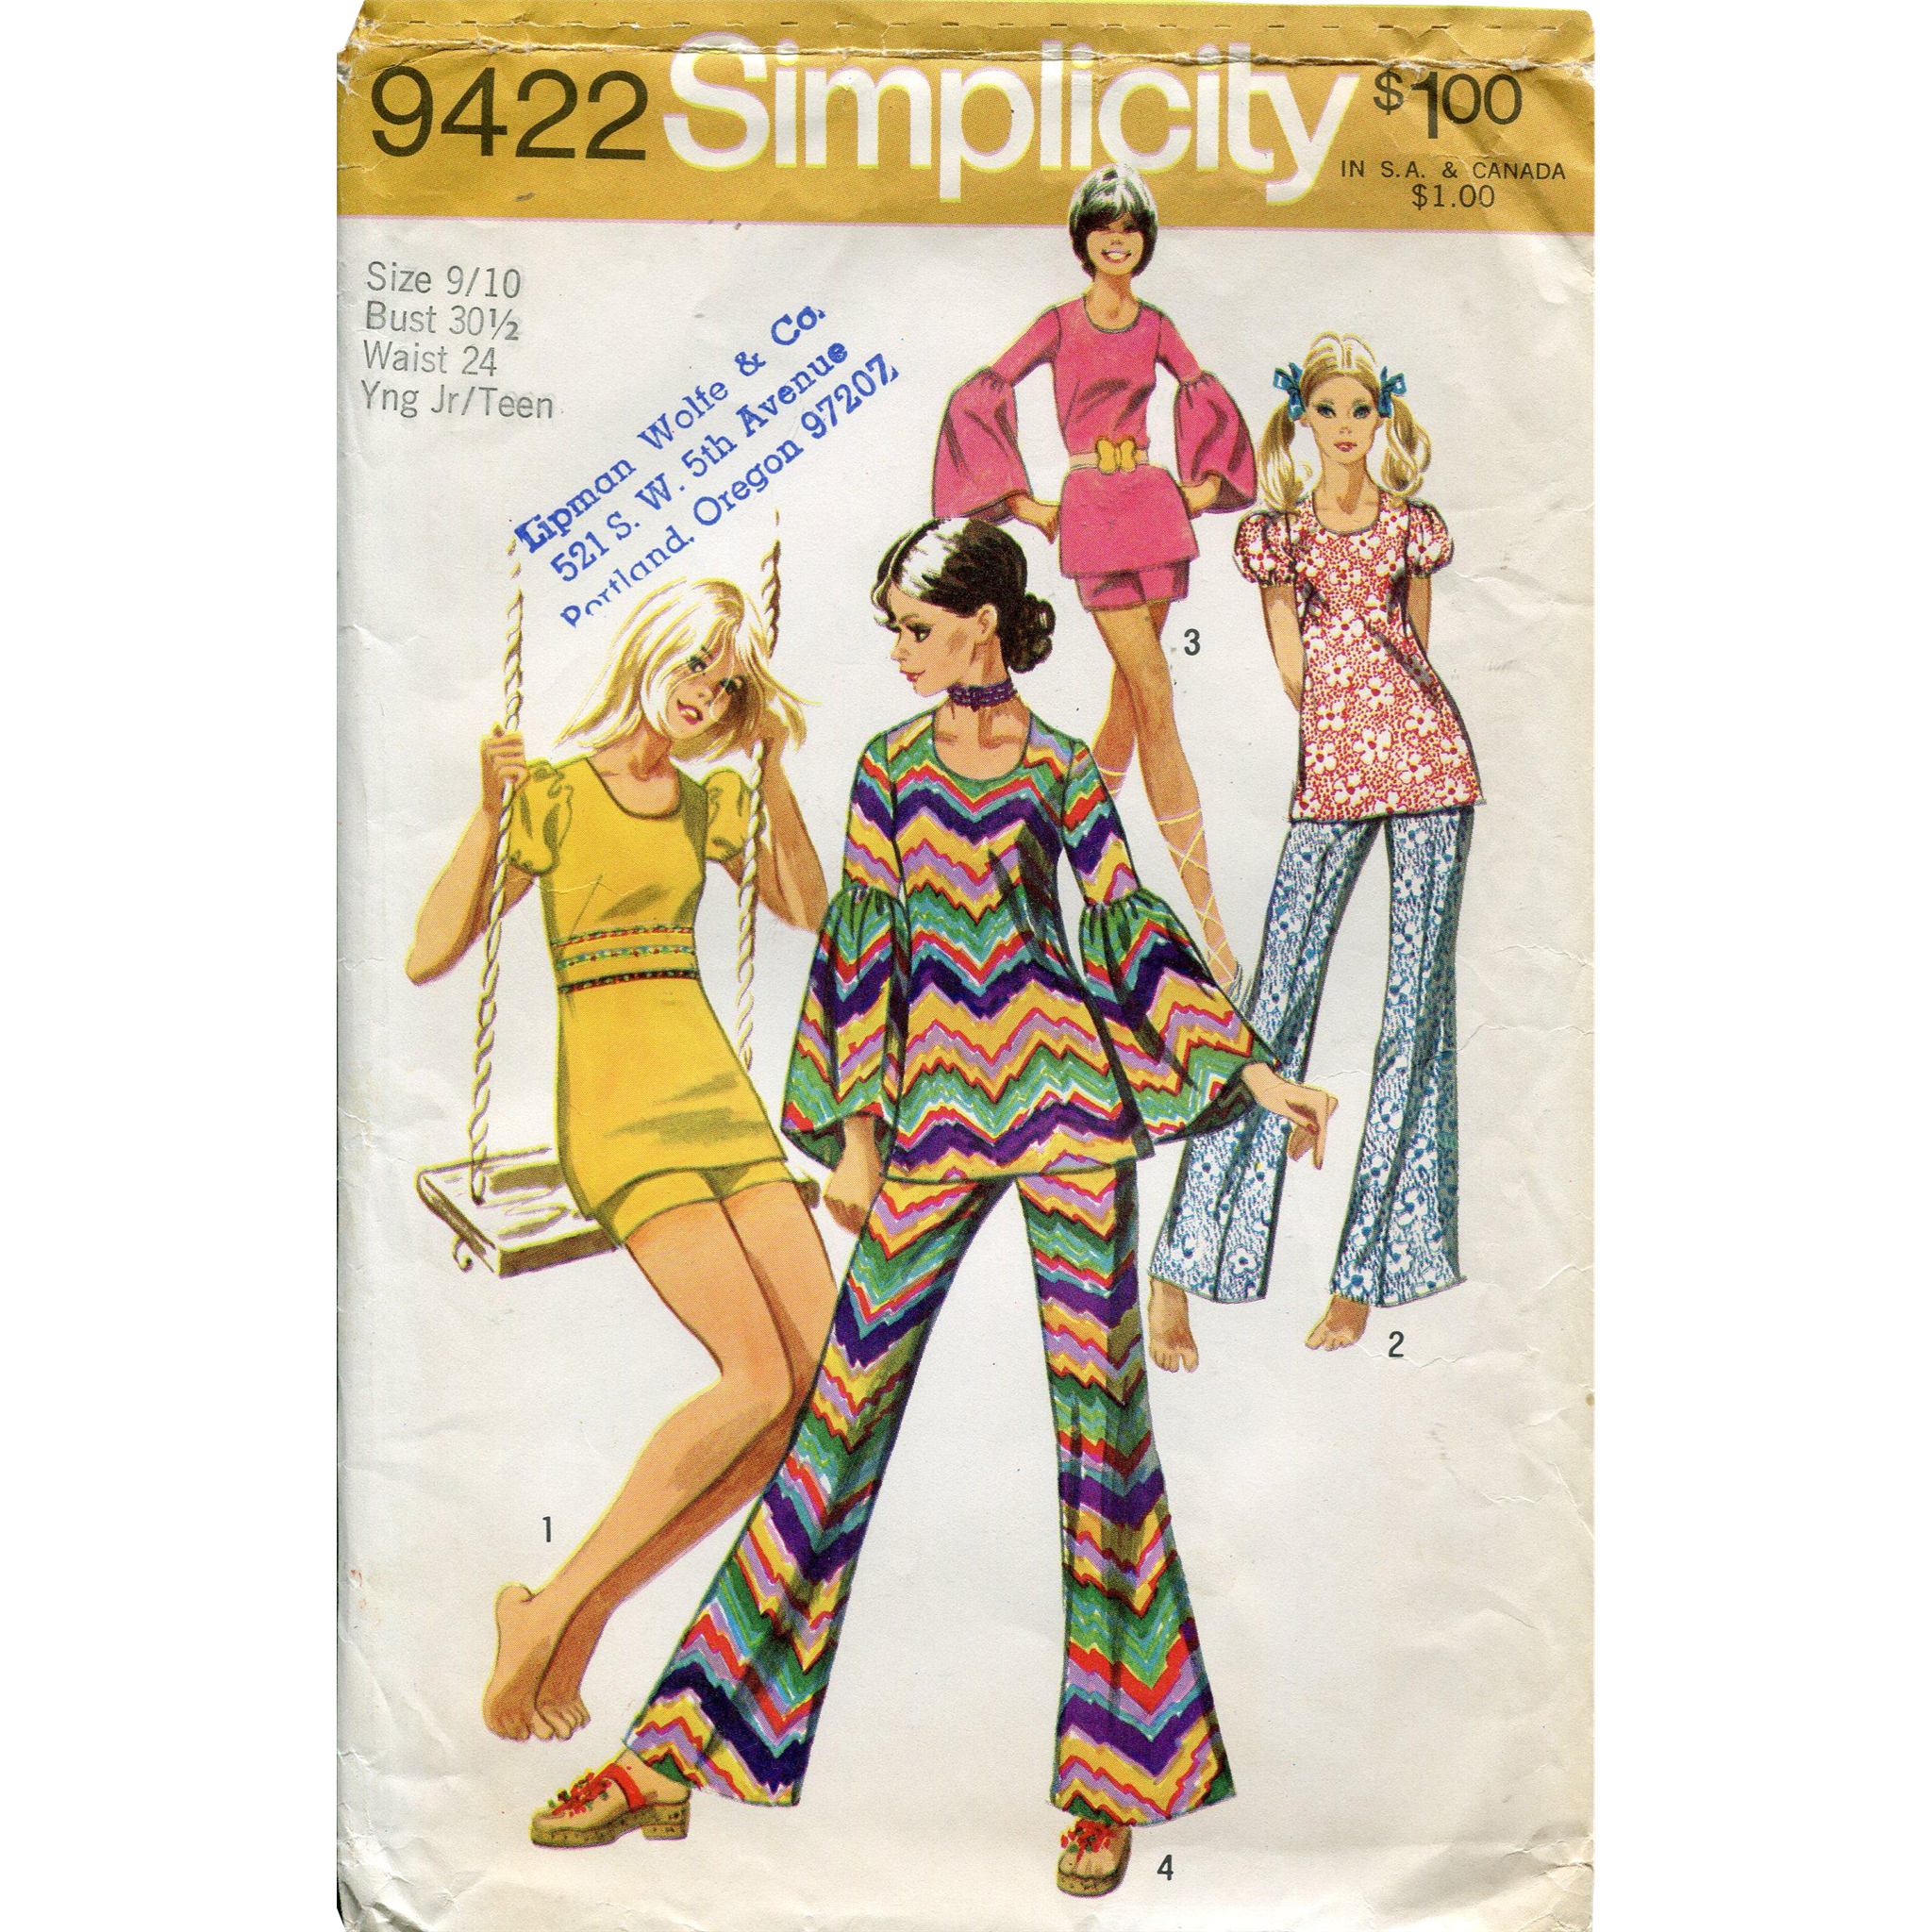 1970s Simplicity Pattern 9422 ~ Young Junior/Teen's Bell-Bottom Pants or Shorts and Tunic, Vintage Size 9/10 (Bust 30 1/2)